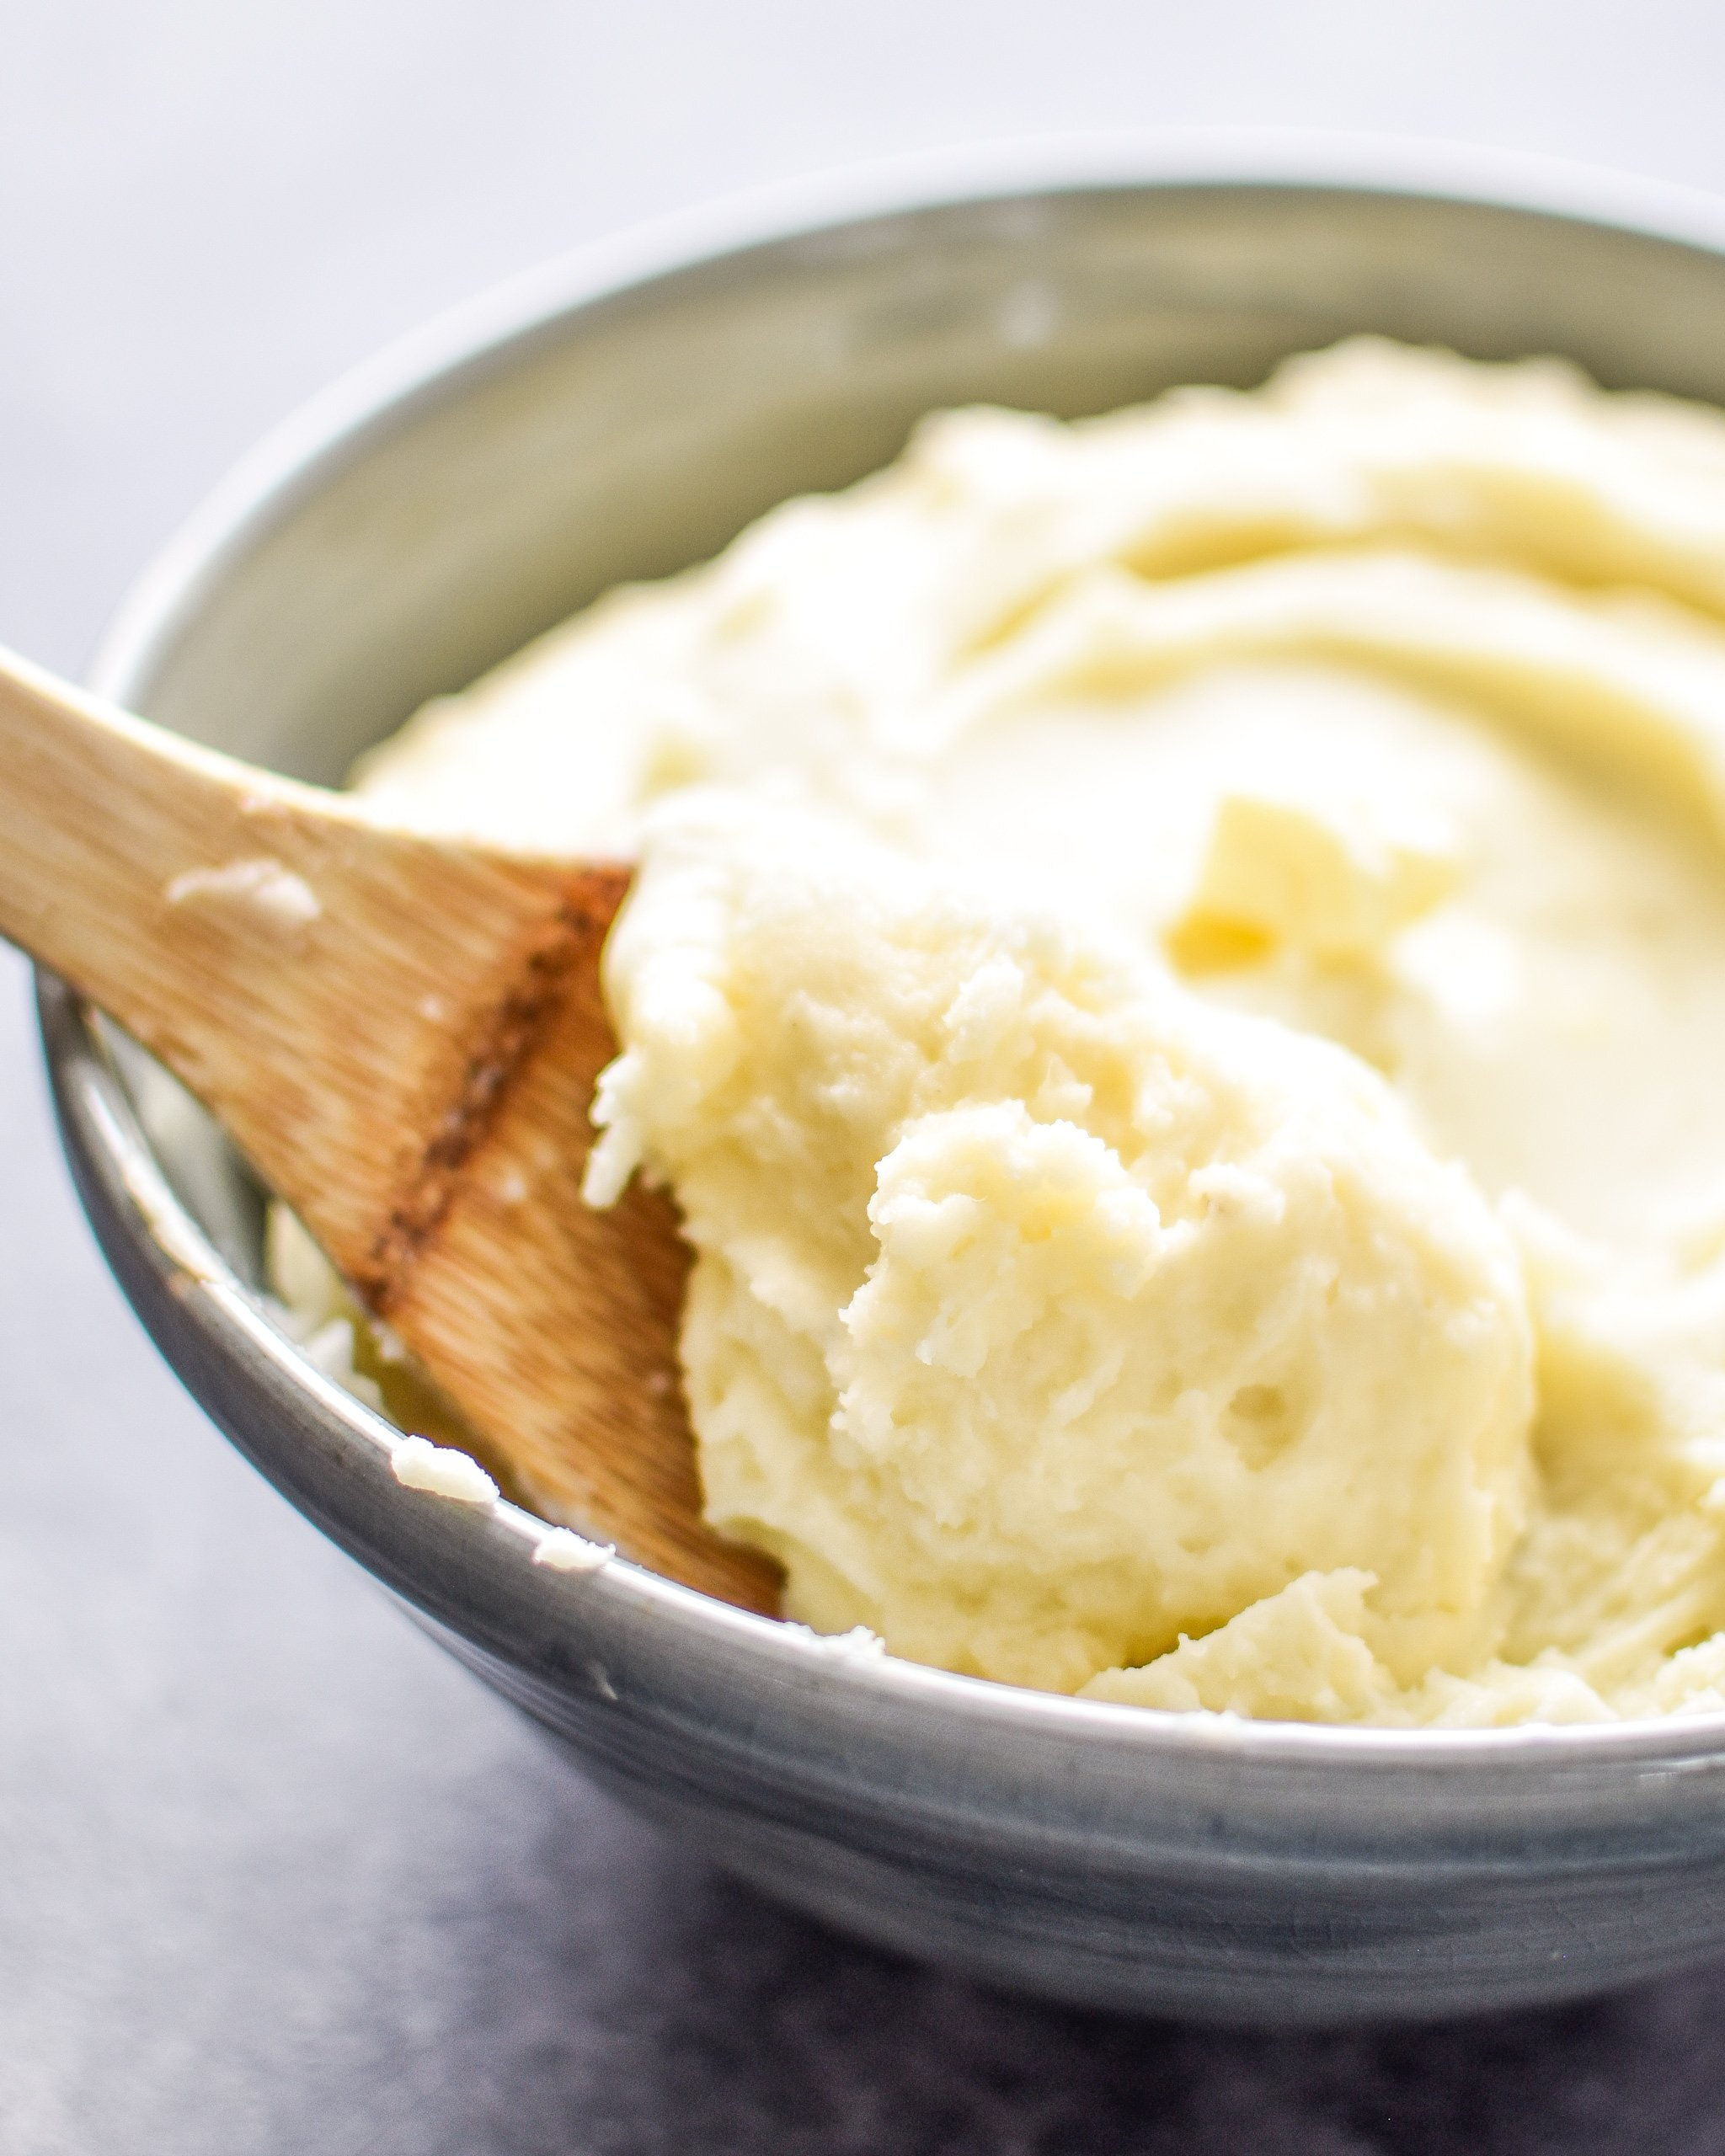 A spoonful of 3-Ingredient Mashed Potatoes resting in a dish of mashed potatoes.